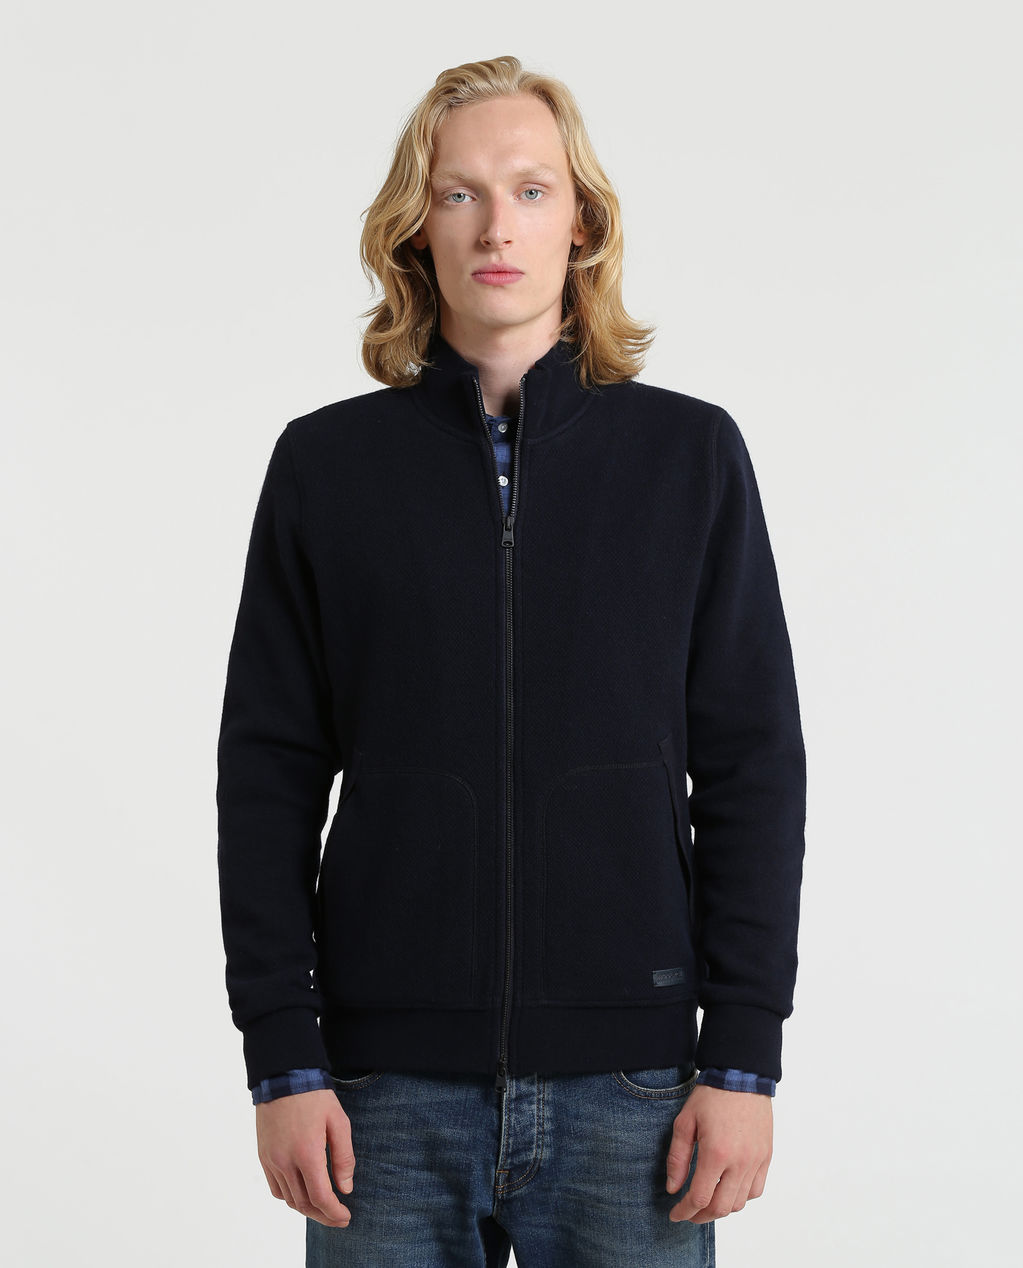 Light Wool Cotton Track Jkt MELTON BLUE